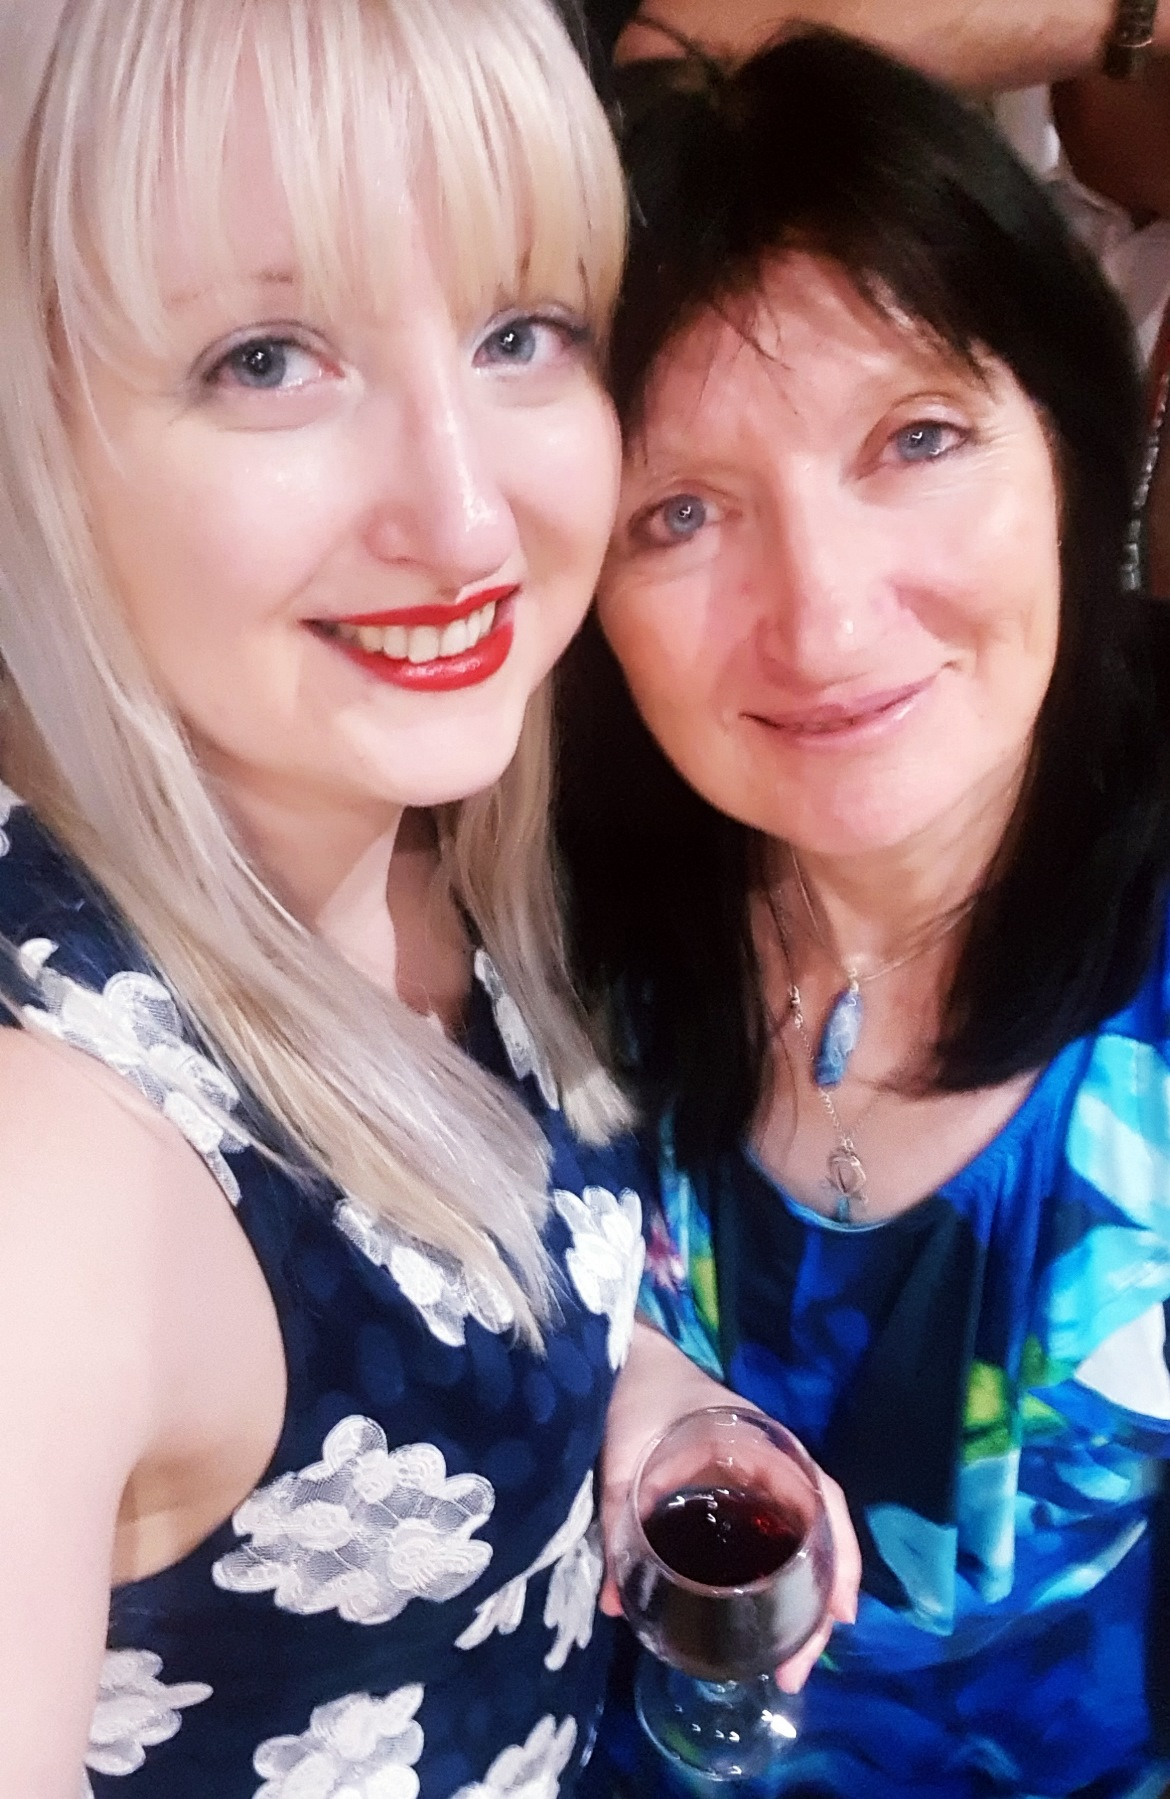 Me and my mum at Caroline and Dan's wedding - September 2018 Monthly Recap by BeckyBecky Blogs